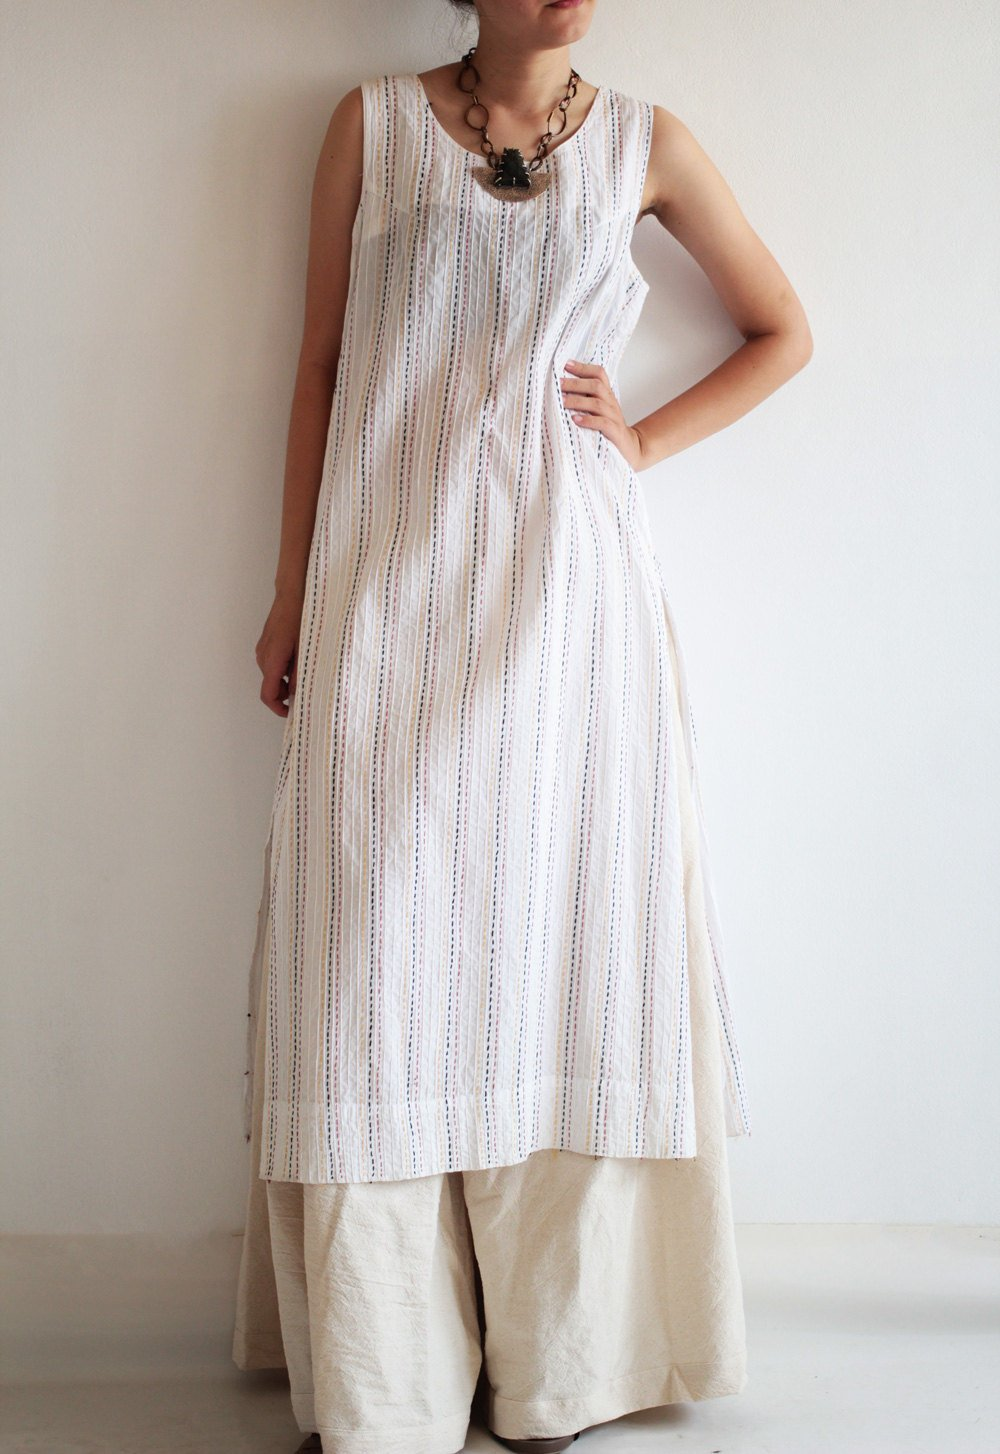 Kurta dress/tunic Round neck  full hand embroidery [D 017]